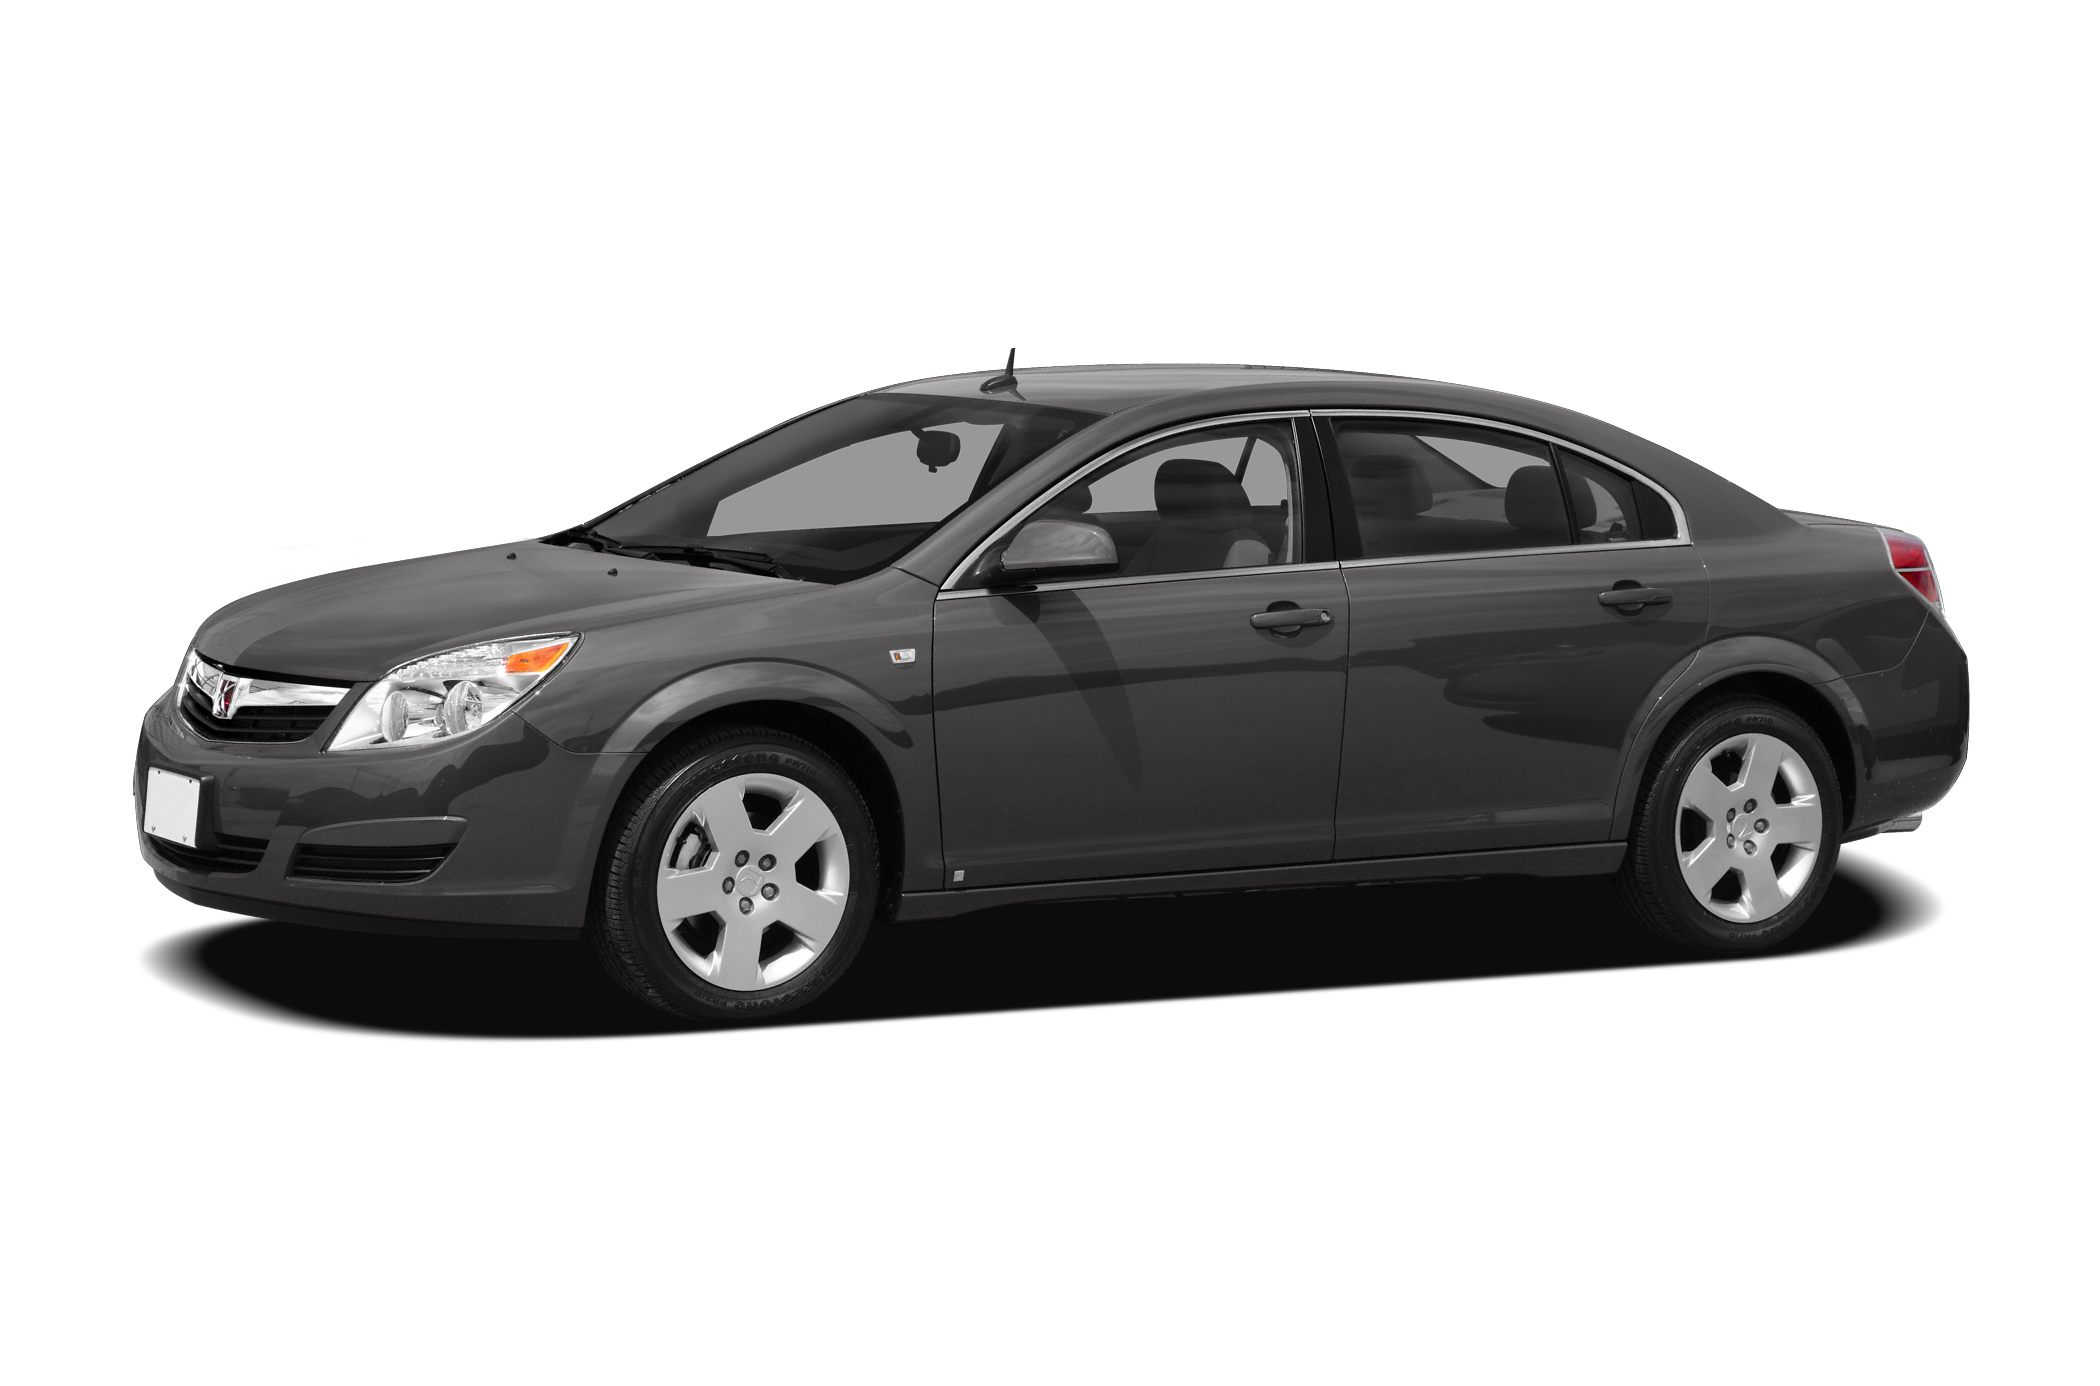 2009 Saturn Aura XR-V6 Voted 1 Preowned Dealer in Metro Boston 2013  2014 and Voted Best Deals